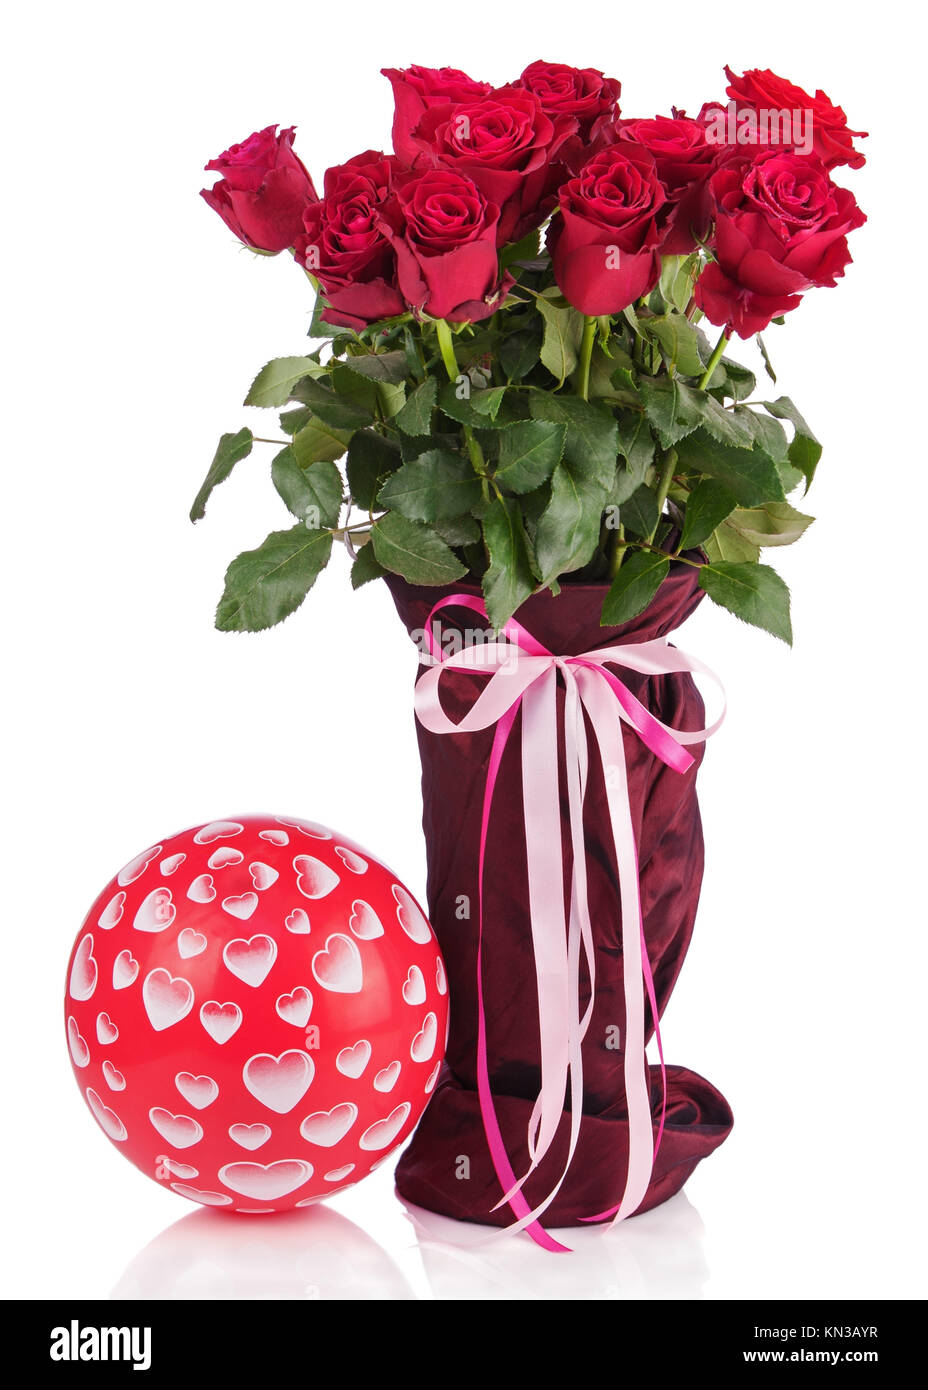 strau aus roten rosen in vase und ballon isoliert auf wei em hintergrund closeup stockfoto. Black Bedroom Furniture Sets. Home Design Ideas